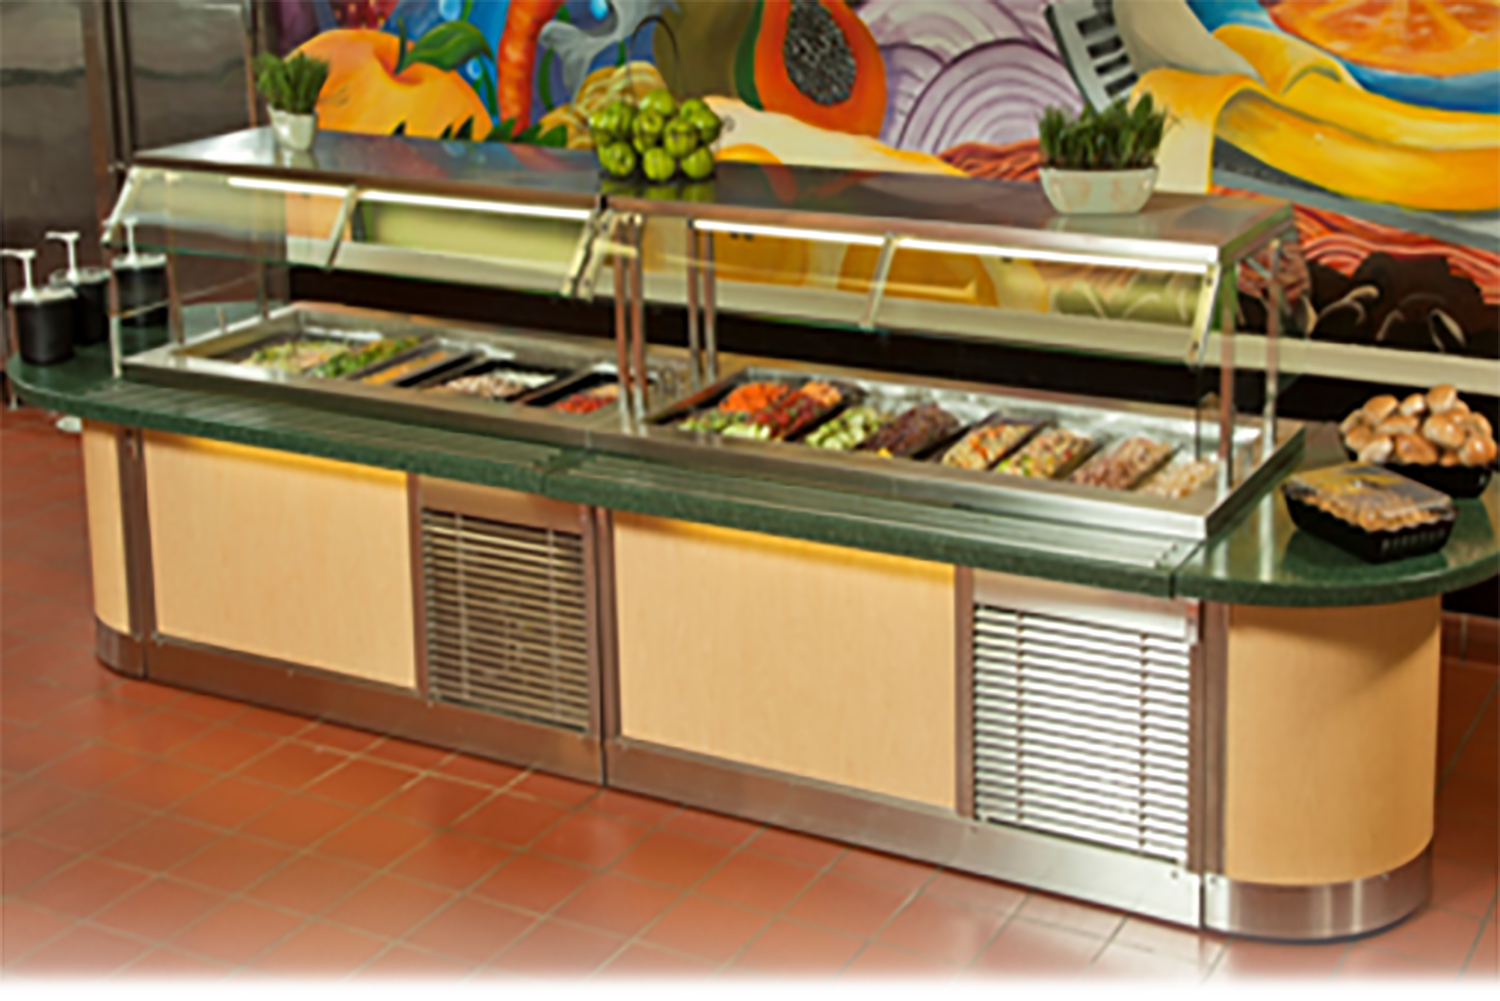 Salad Bar Cabinet Site Picture - G.A. Systems, Huntington Beach